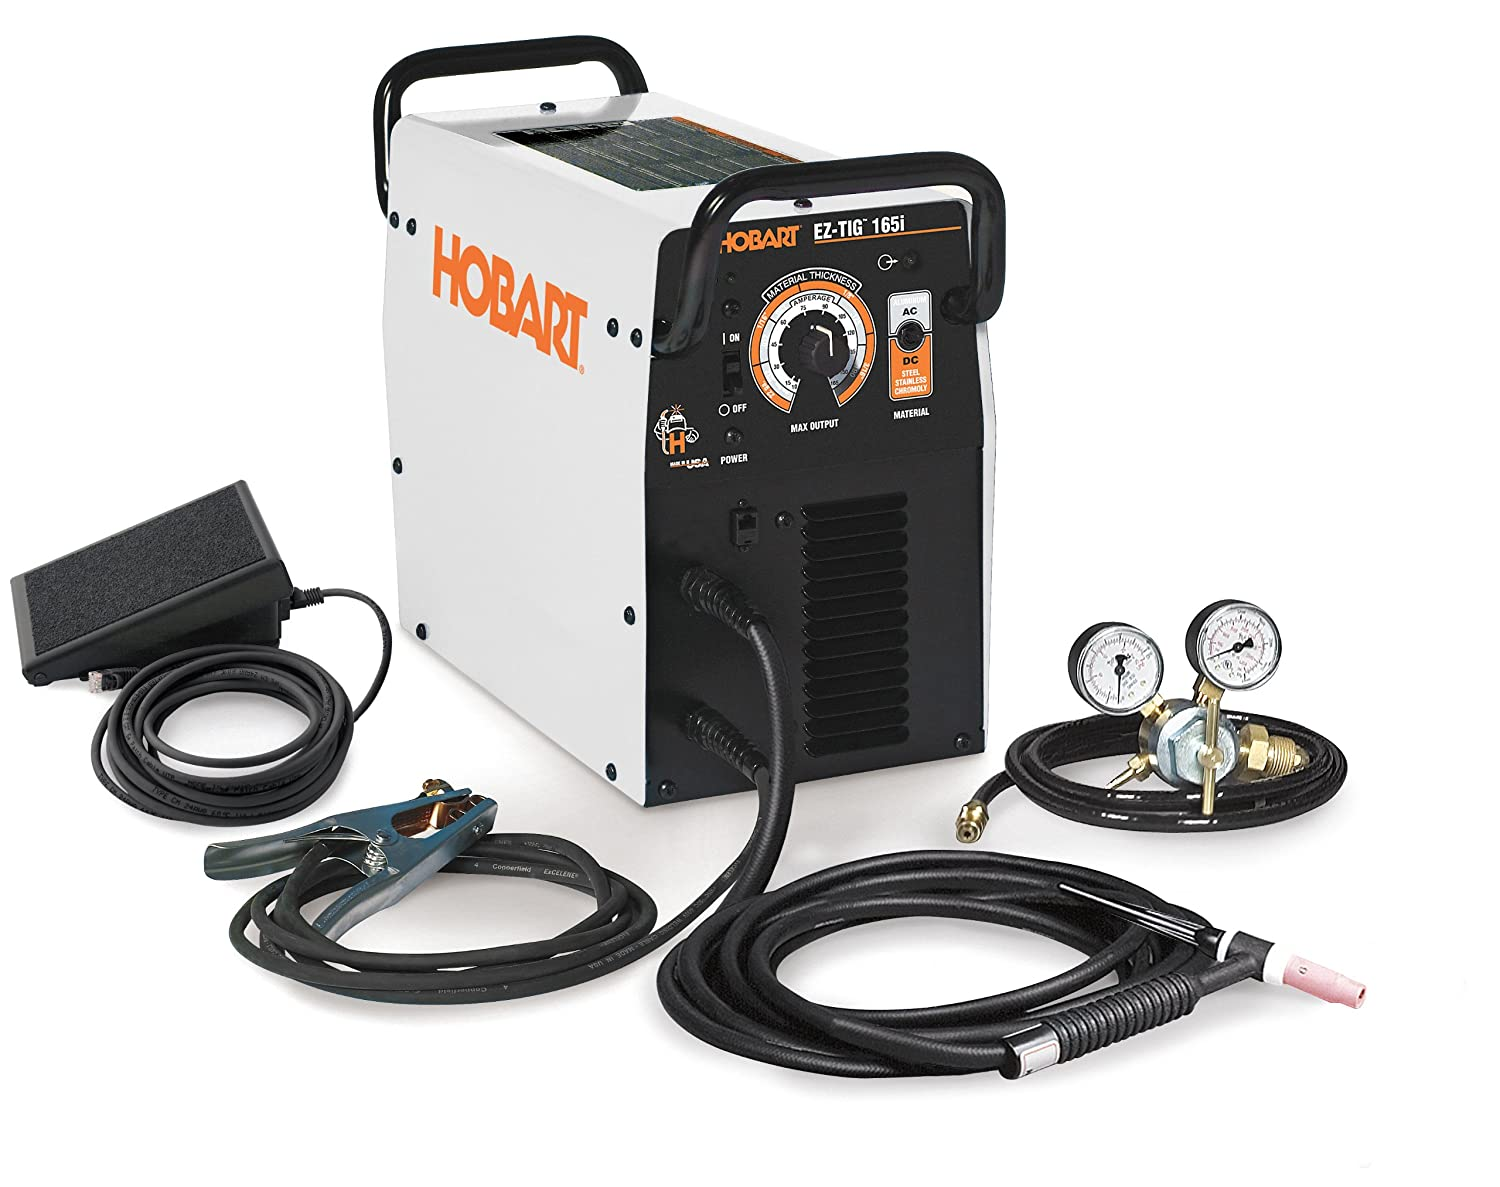 Hobart 500551 EZ-TIG 165i AC/DC TIG Welder 230V - Mig Welding Equipment -  Amazon.com